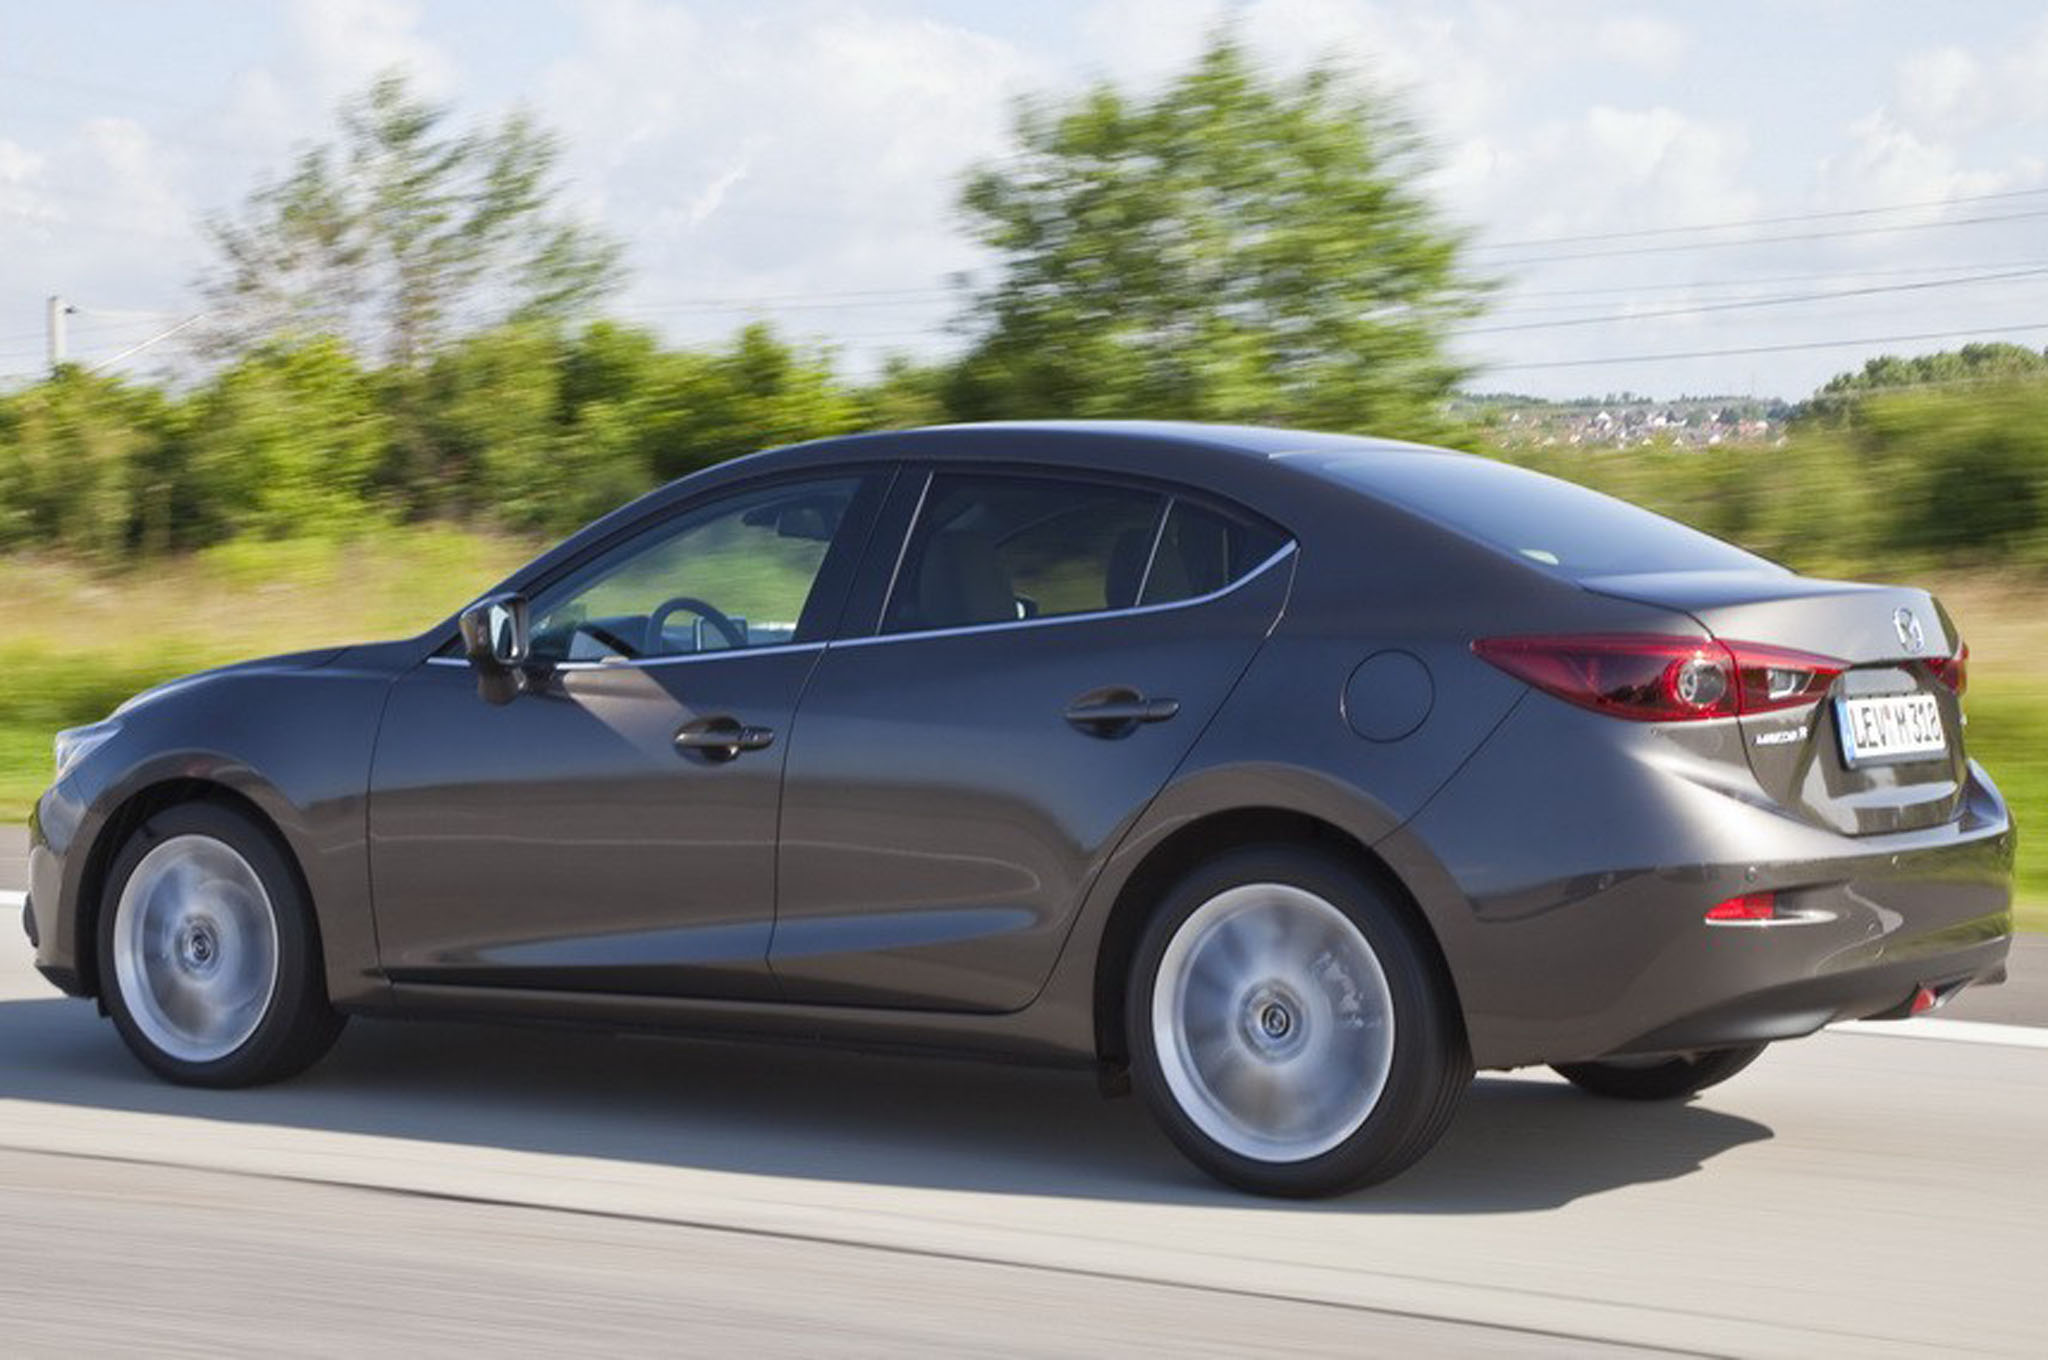 2014 Mazda 3 Rear Three Quarters1